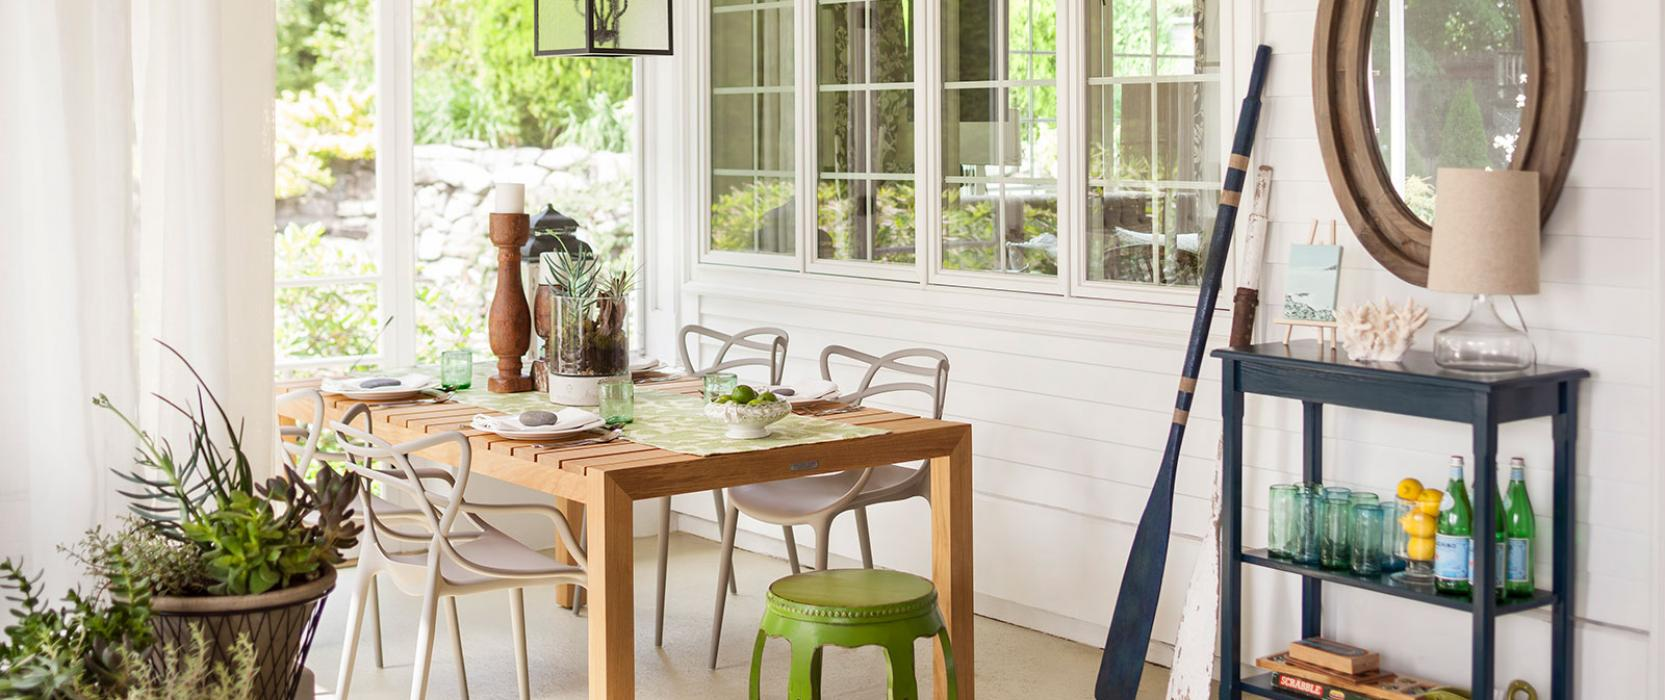 Screened sitting porch by Elza B Design